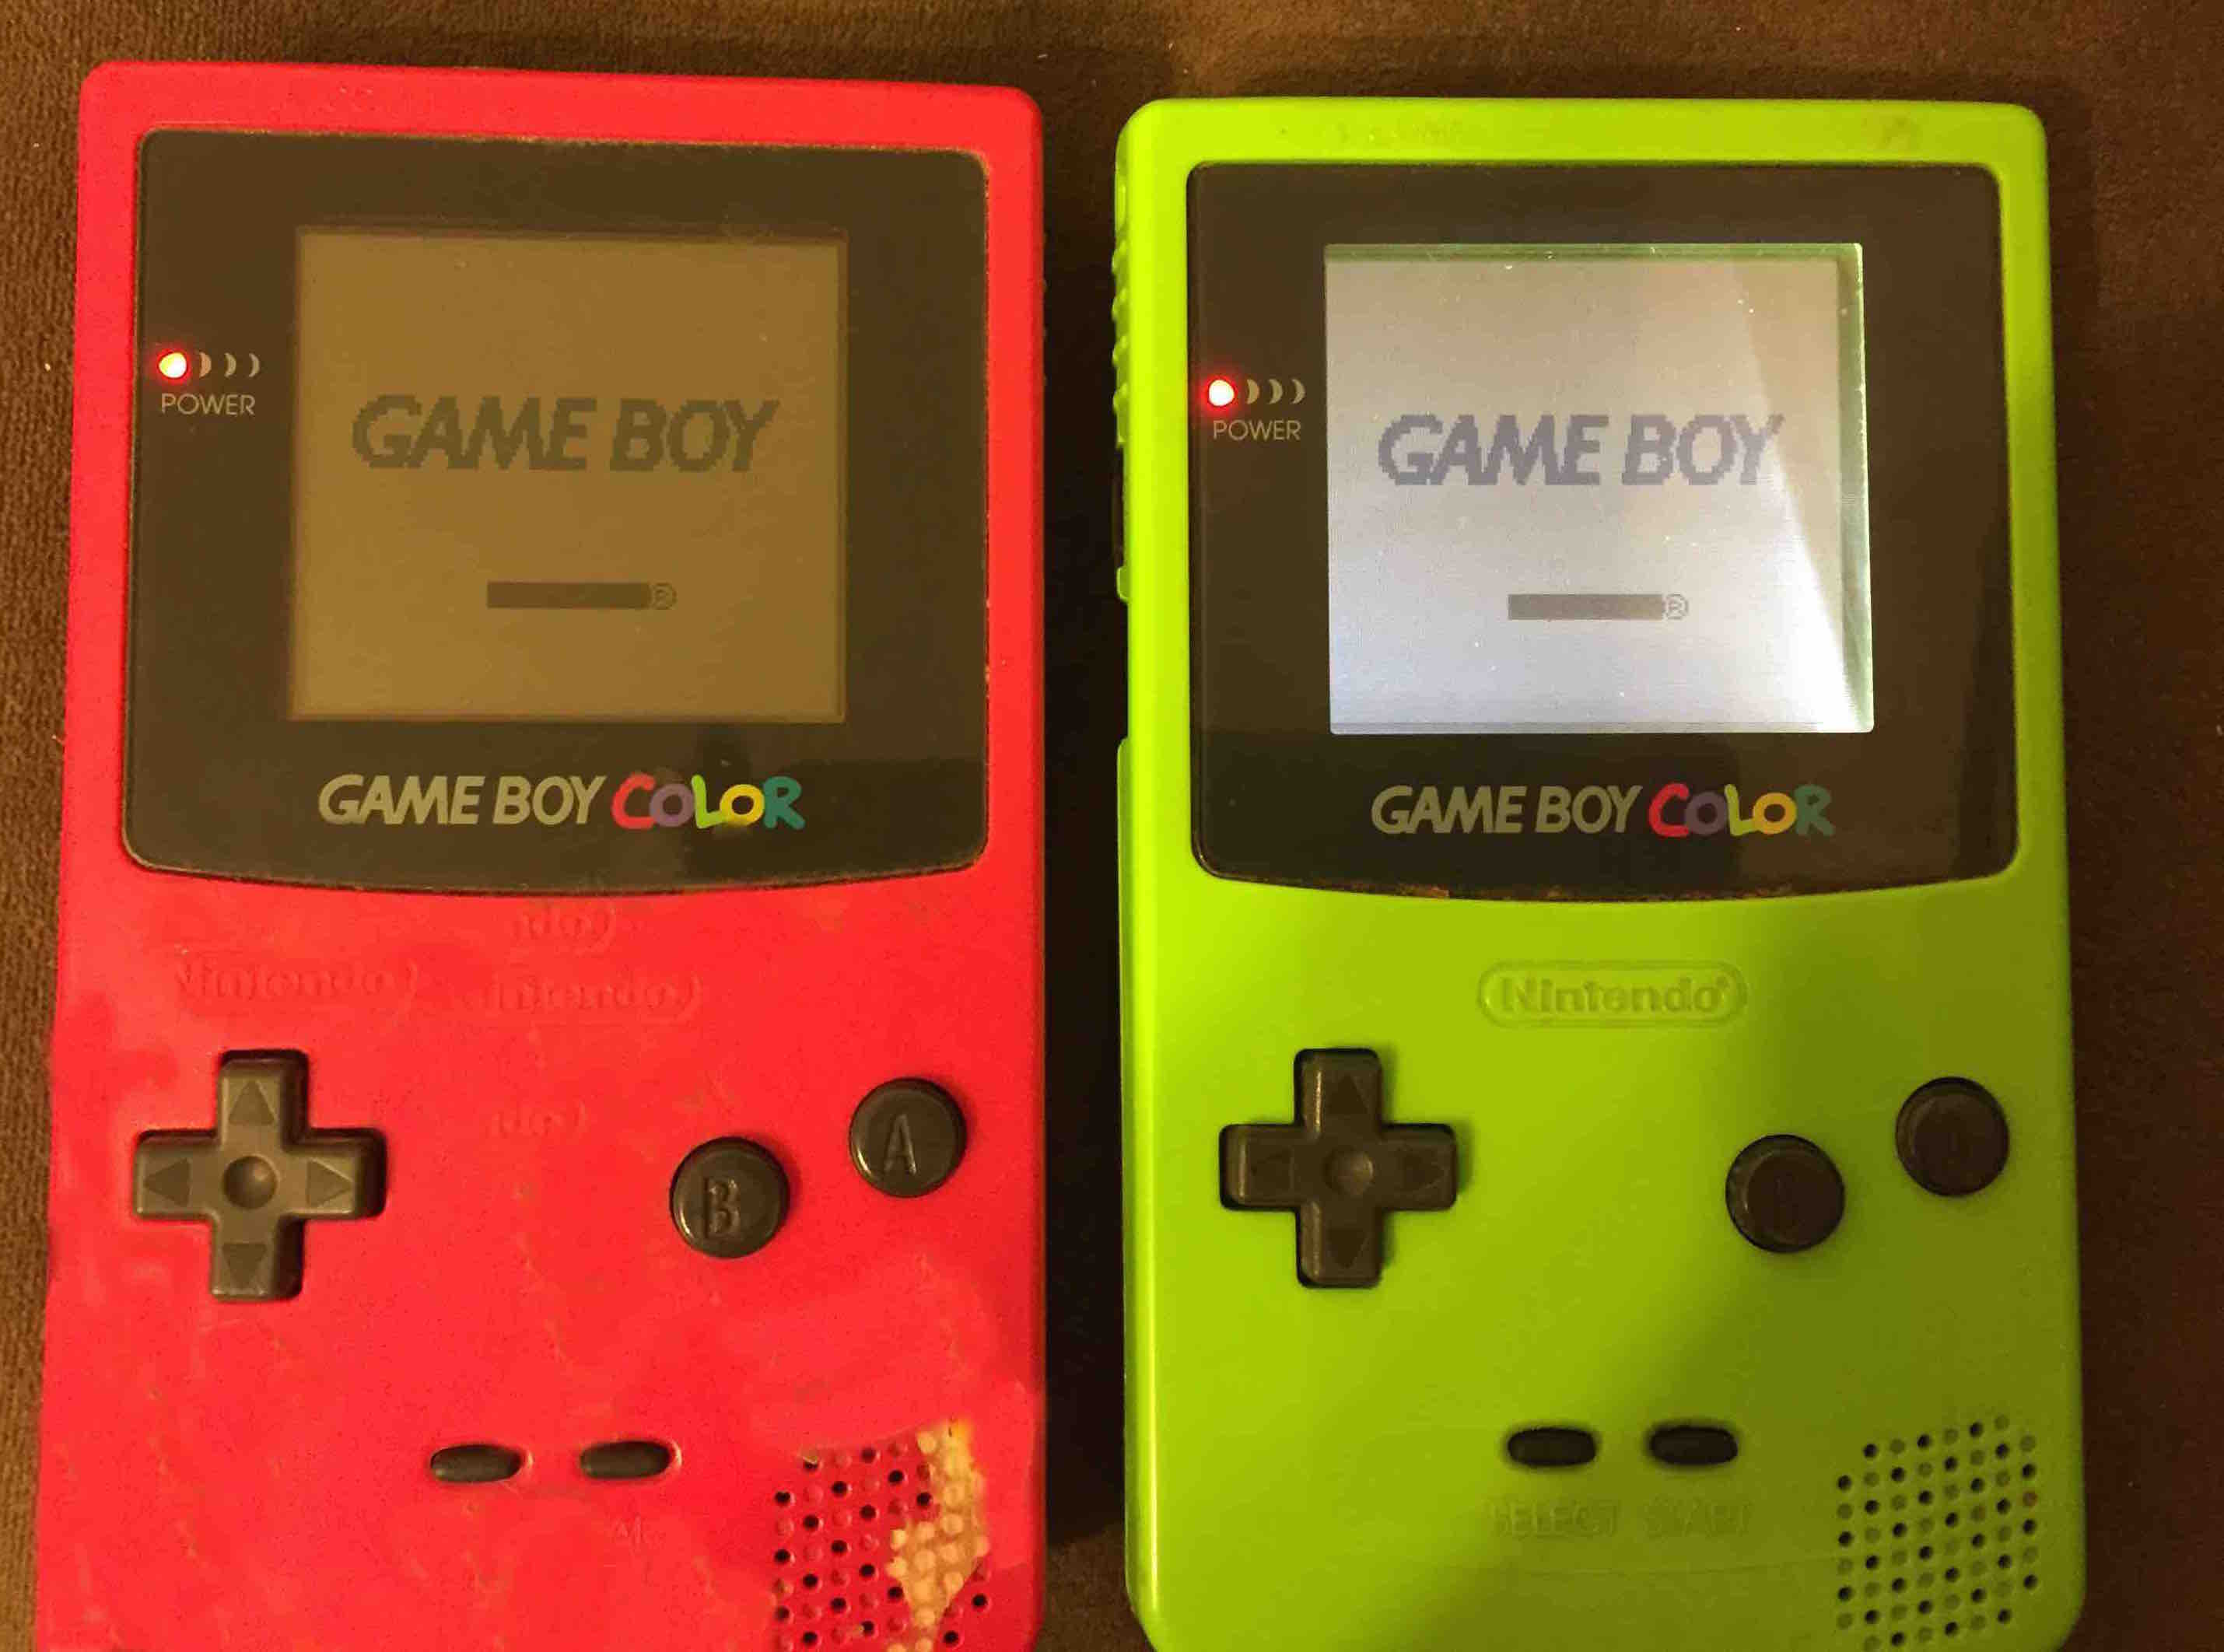 Gameboy color screen mod - Gameboy Color Screen Mod 0